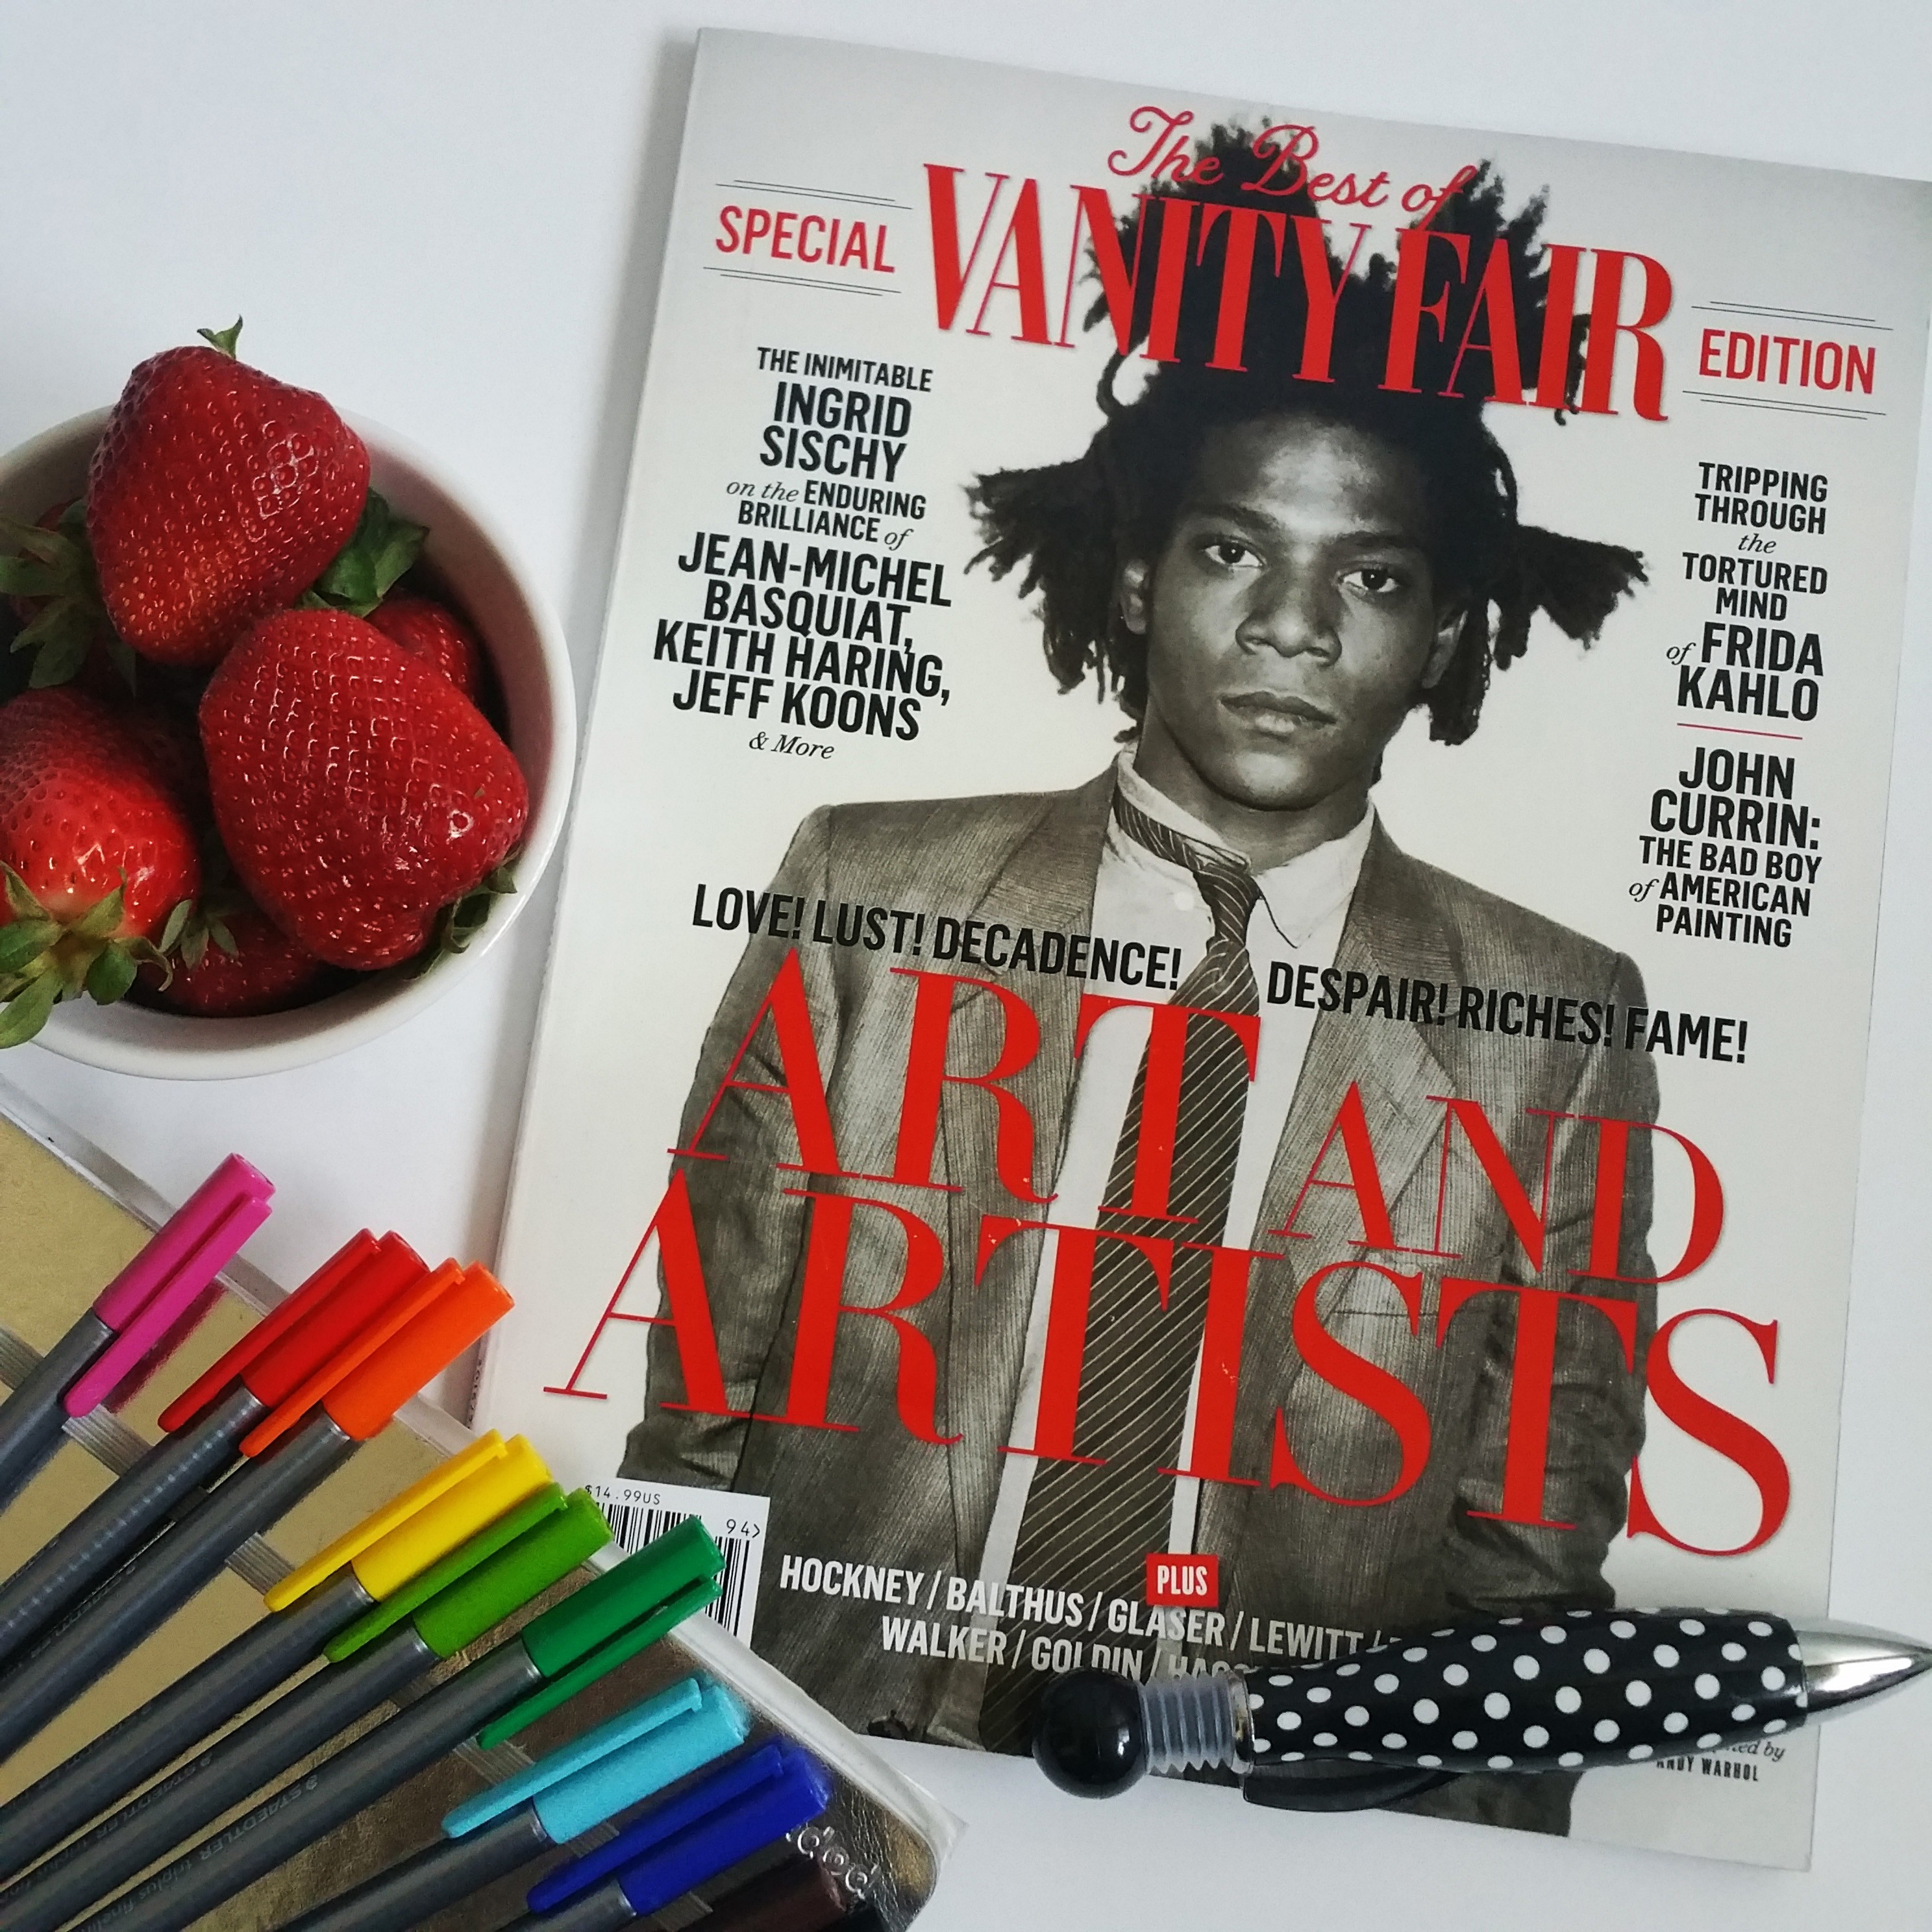 Finding Treasures in my design studio while doing Spring Cleaning Jean-Michel Basquiat